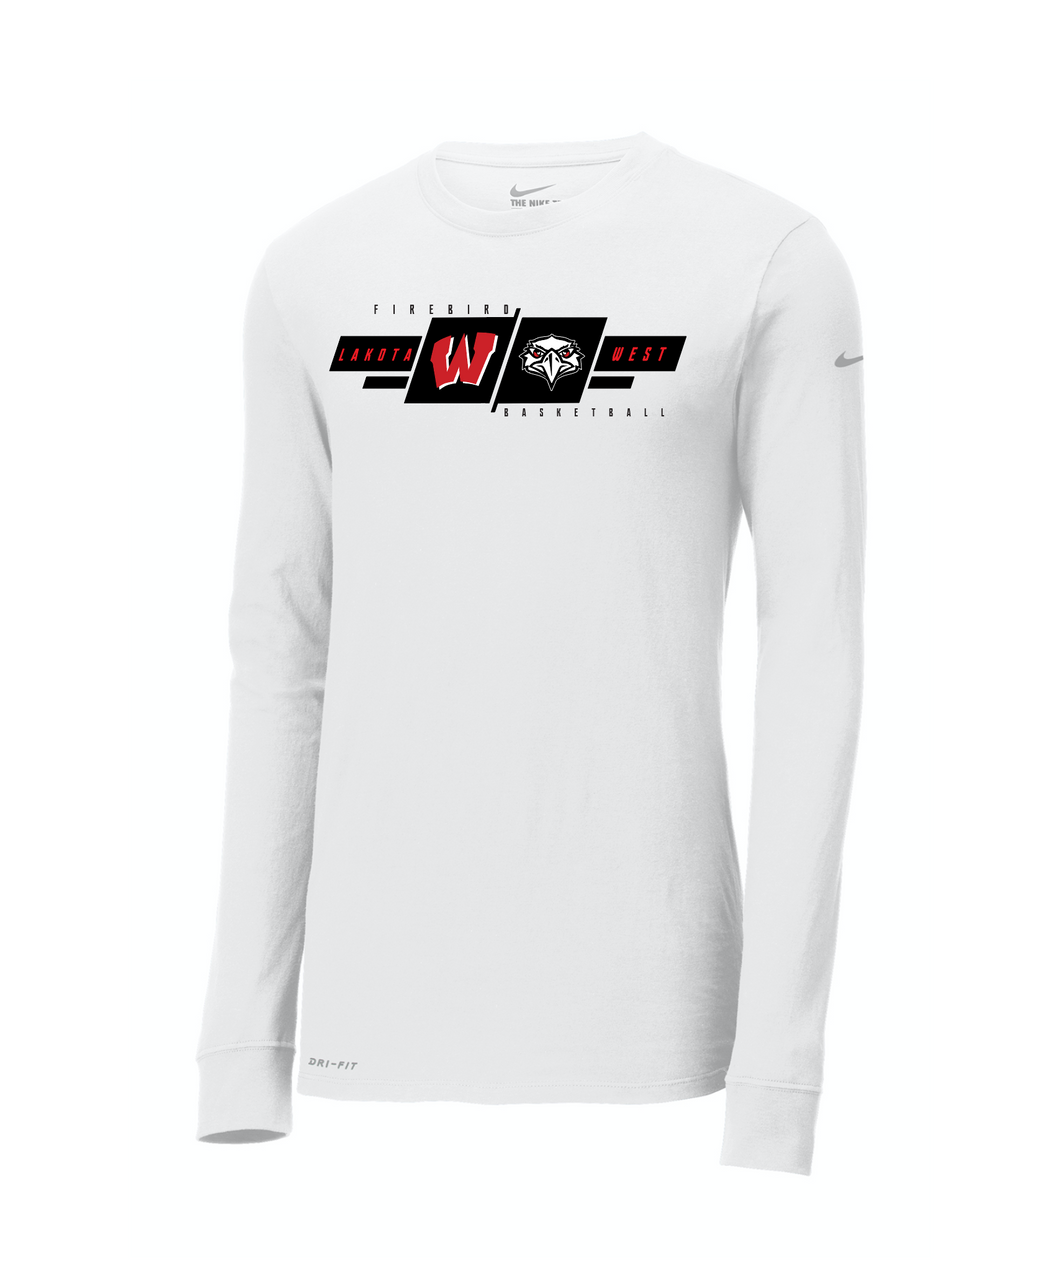 West Basketball Nike Cotton/Poly Dri Fit T LS